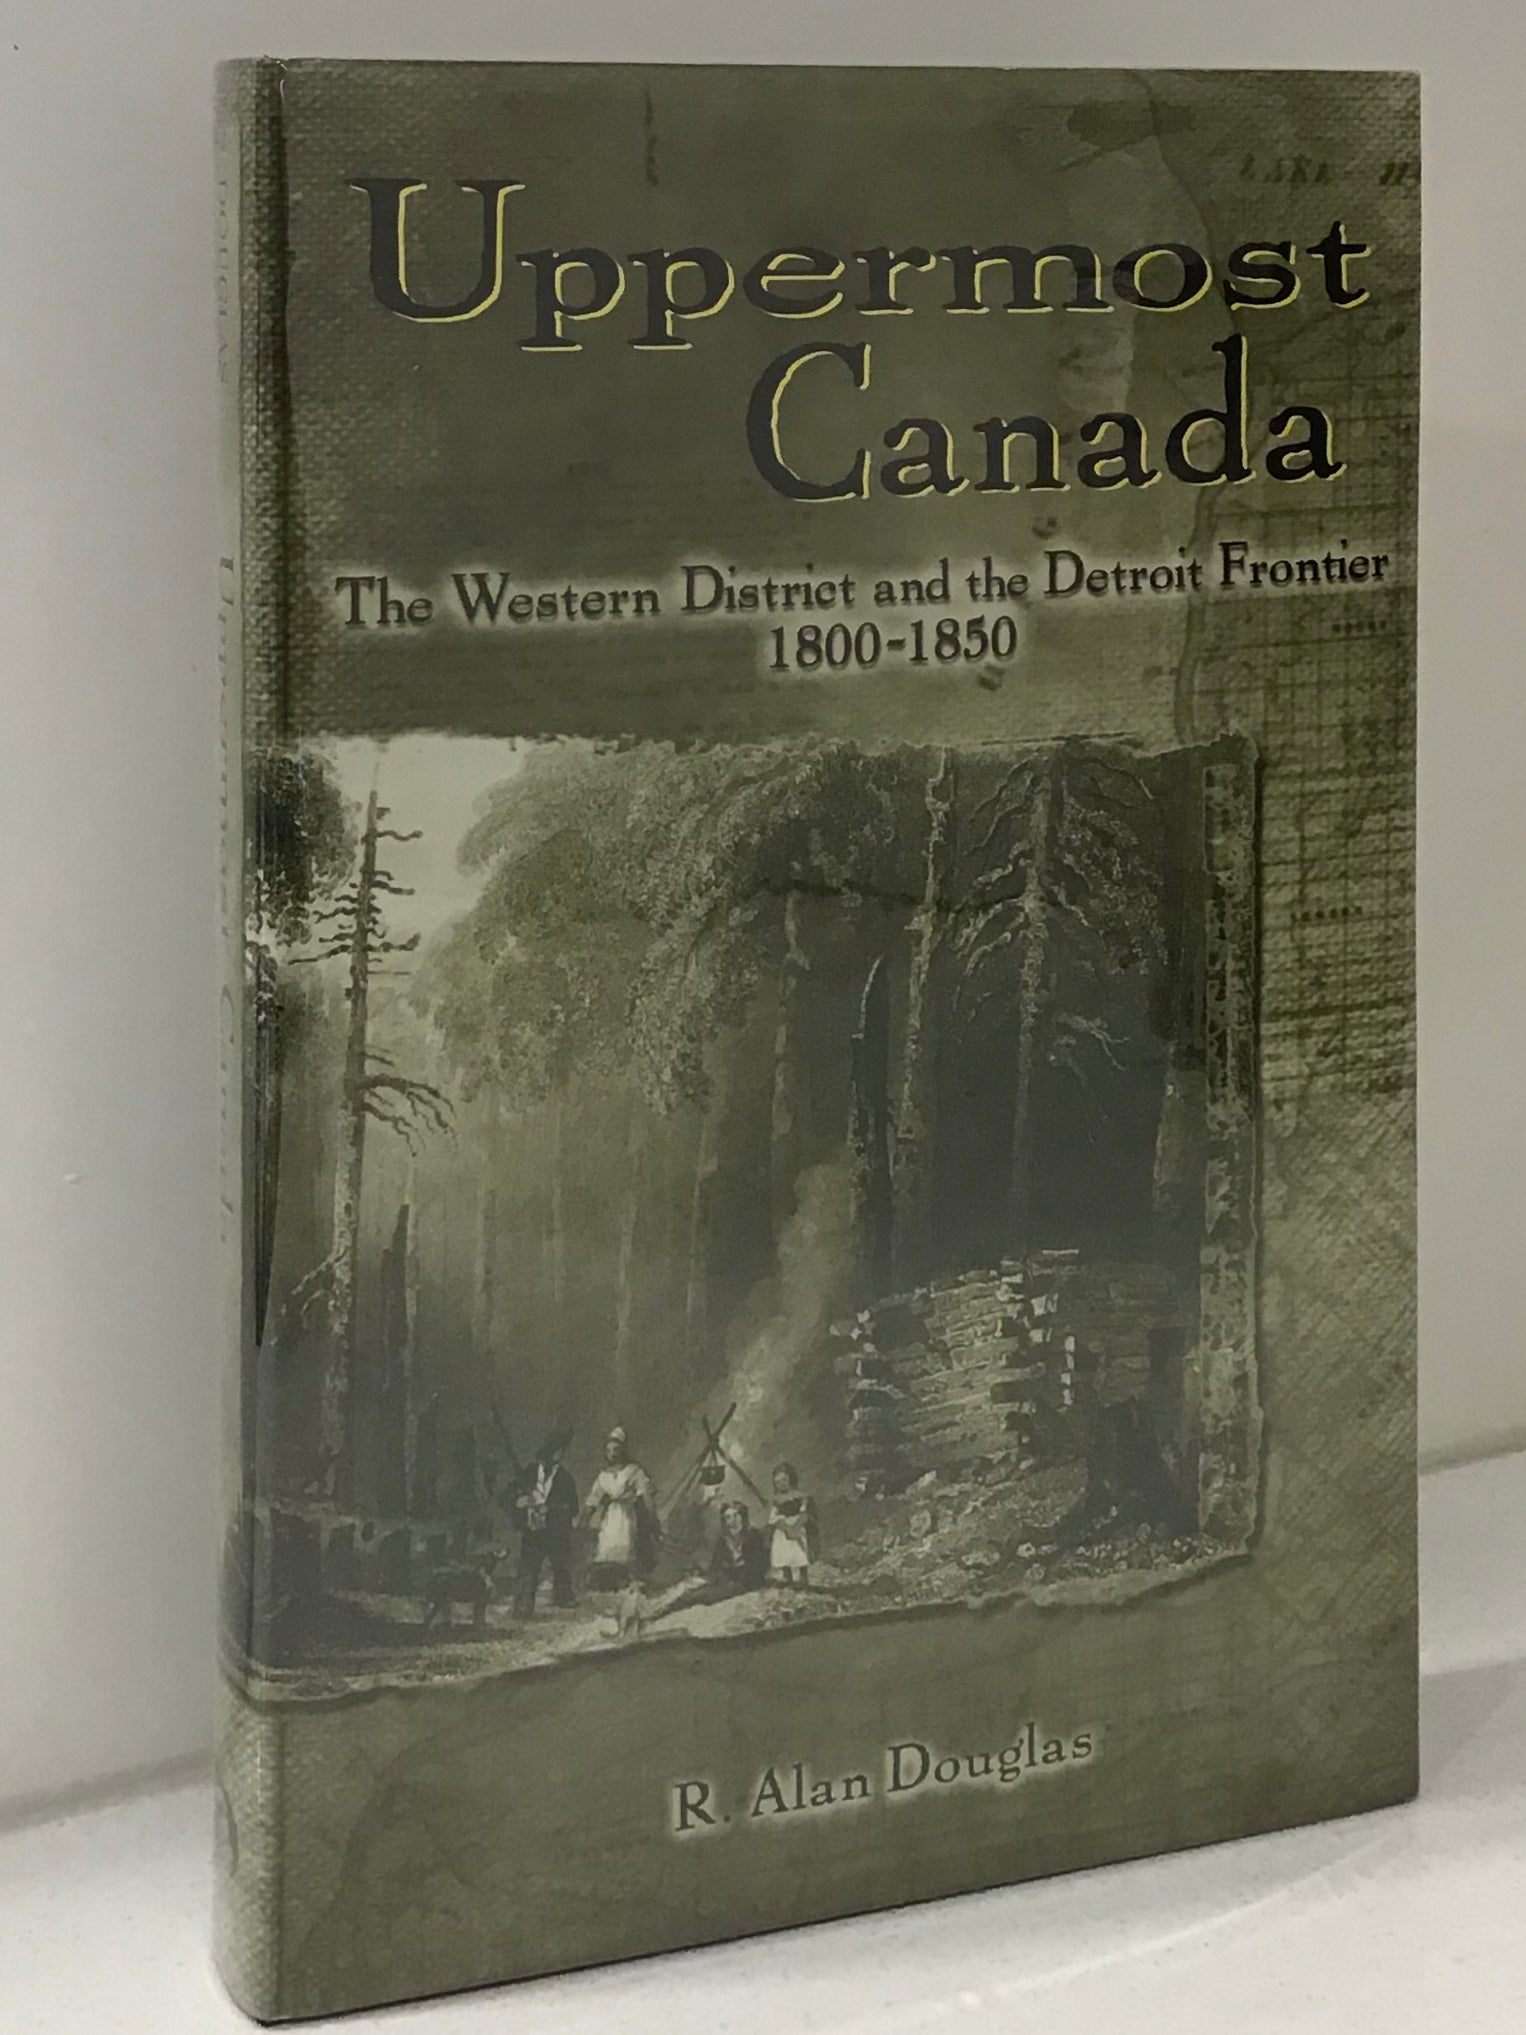 Uppermost Canada : The Western District and the Detroit Frontier 1800-1850